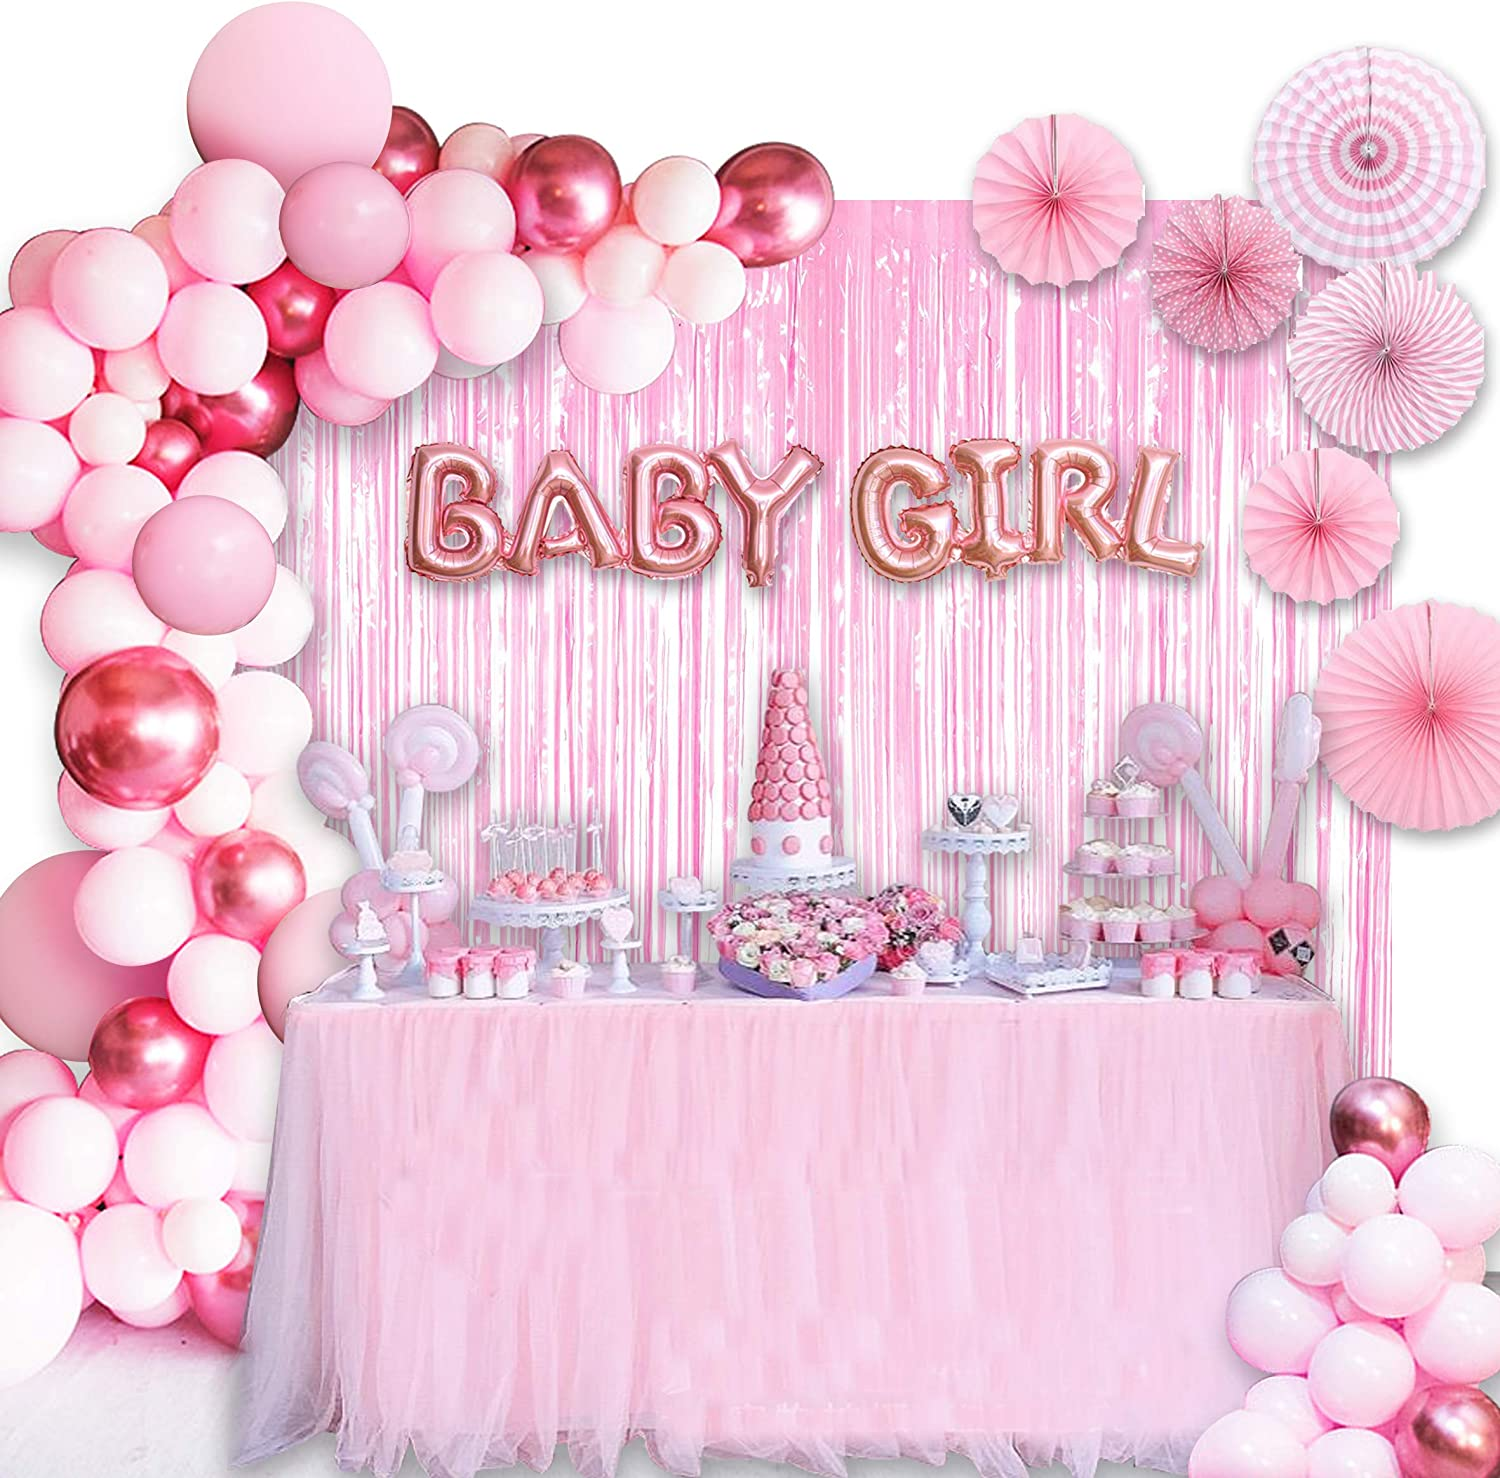 Amazon Com Baby Shower Decorations For Girl 10in Baby Girl Balloons 129pcs Pink Party Decorations Are Perfect For Your Baby Shower Toys Games